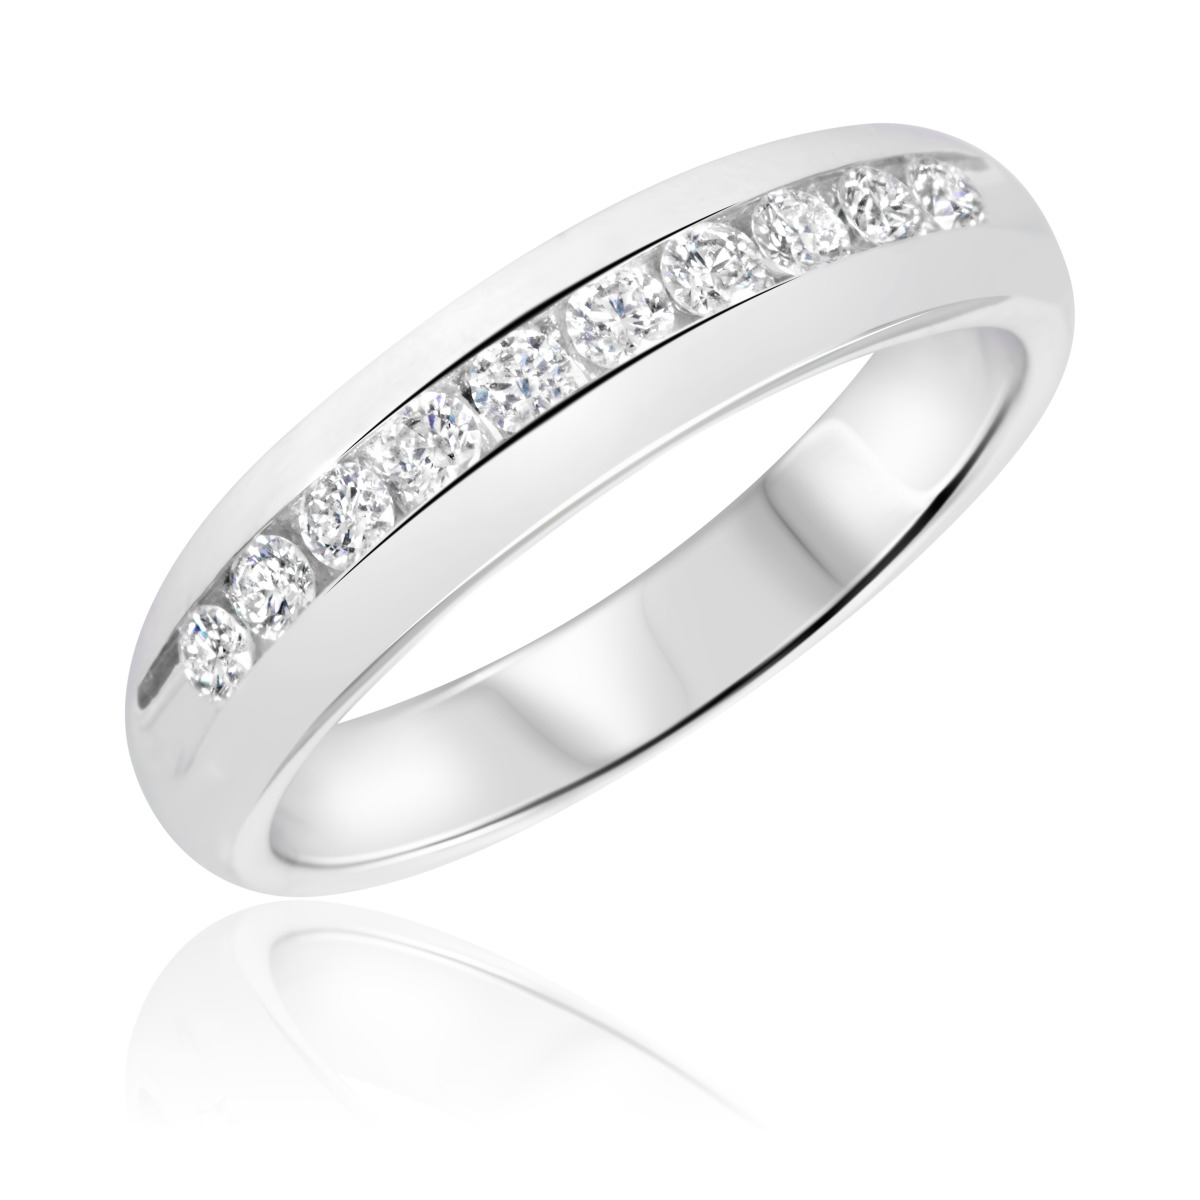 1 2 carat t w diamond men 39 s wedding ring 14k white gold for Men s 1 carat diamond wedding bands